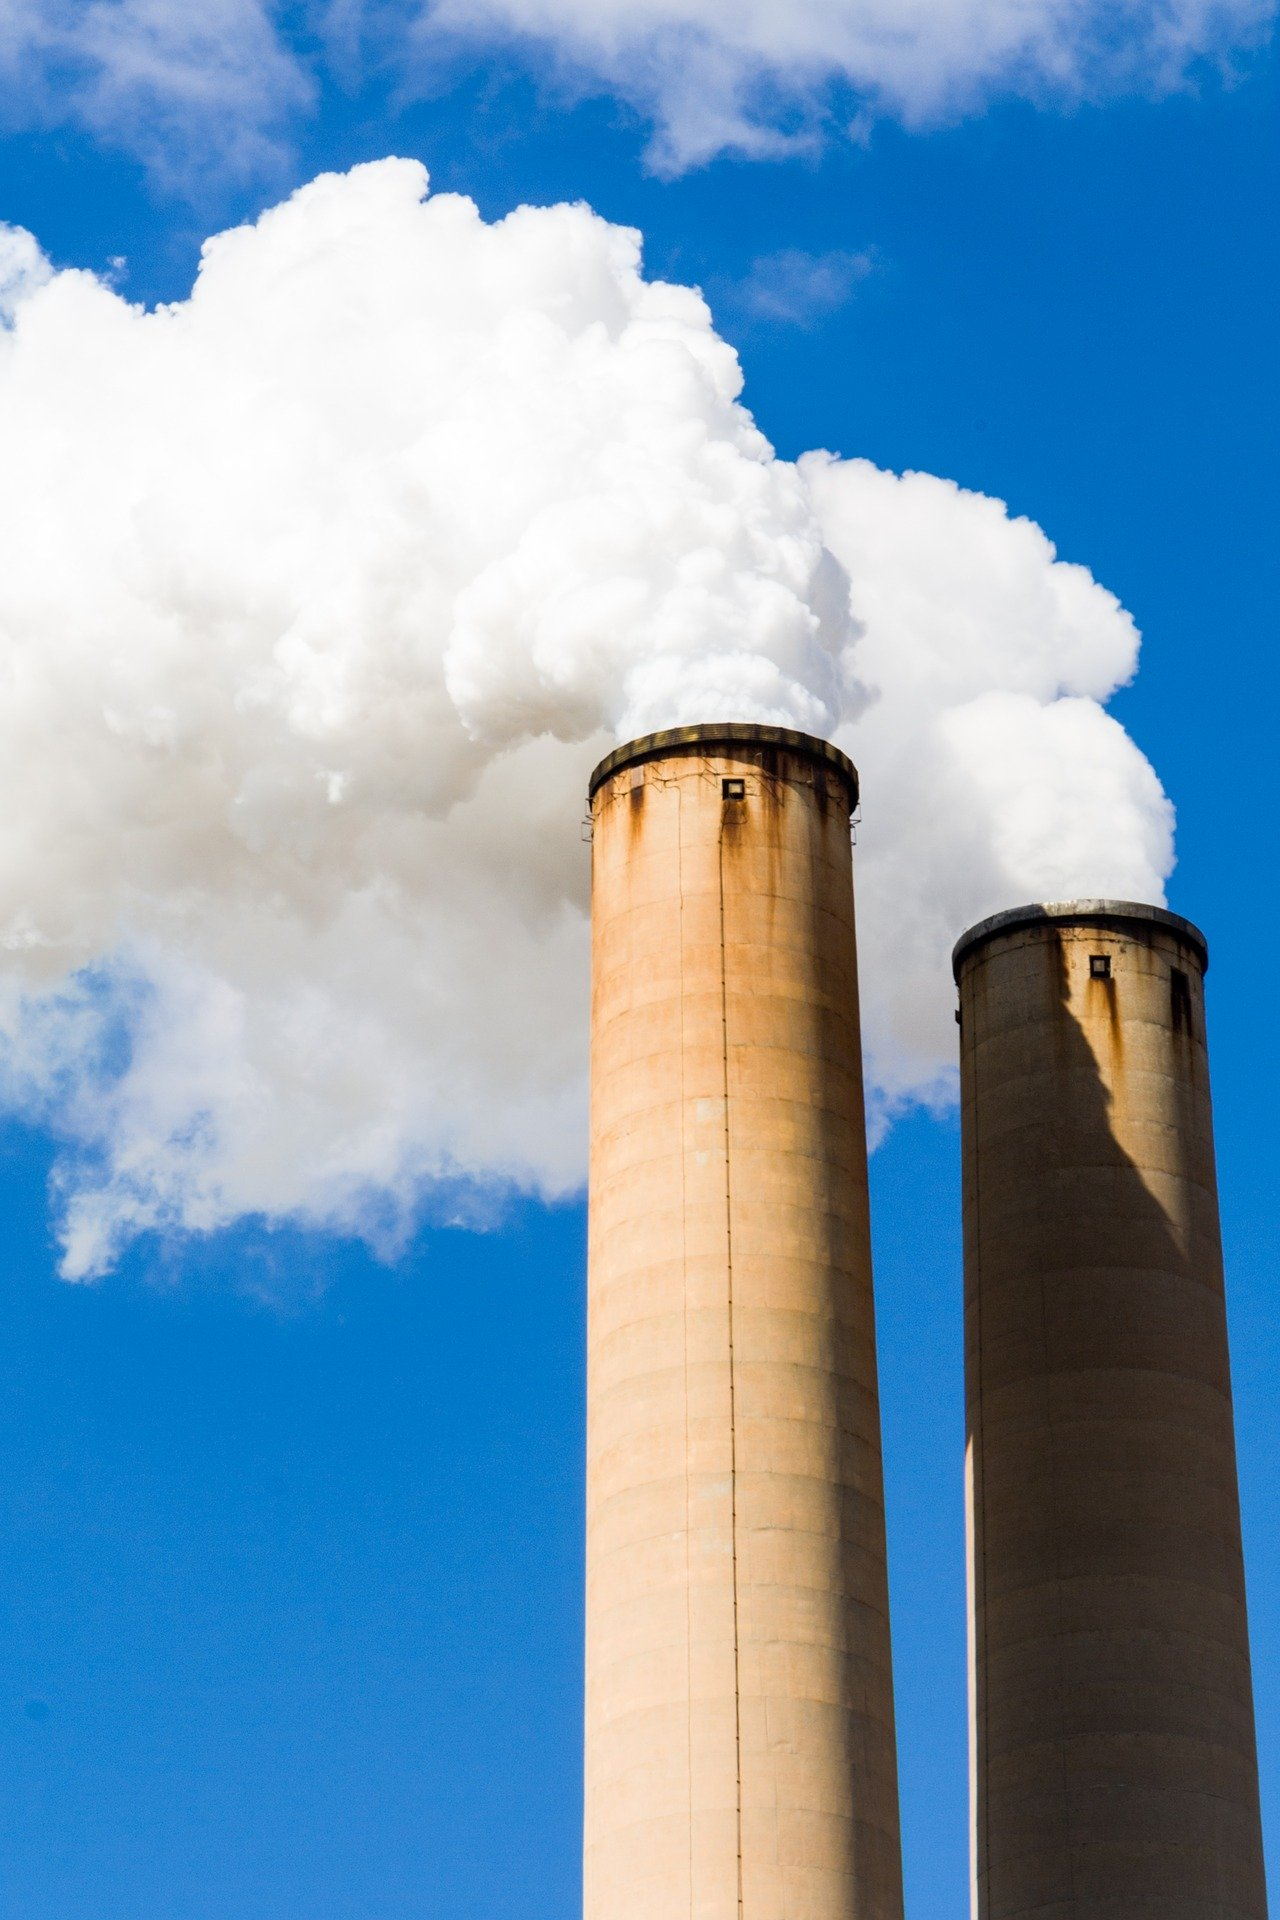 Report: Maryland Leads States in Emissions Reductions